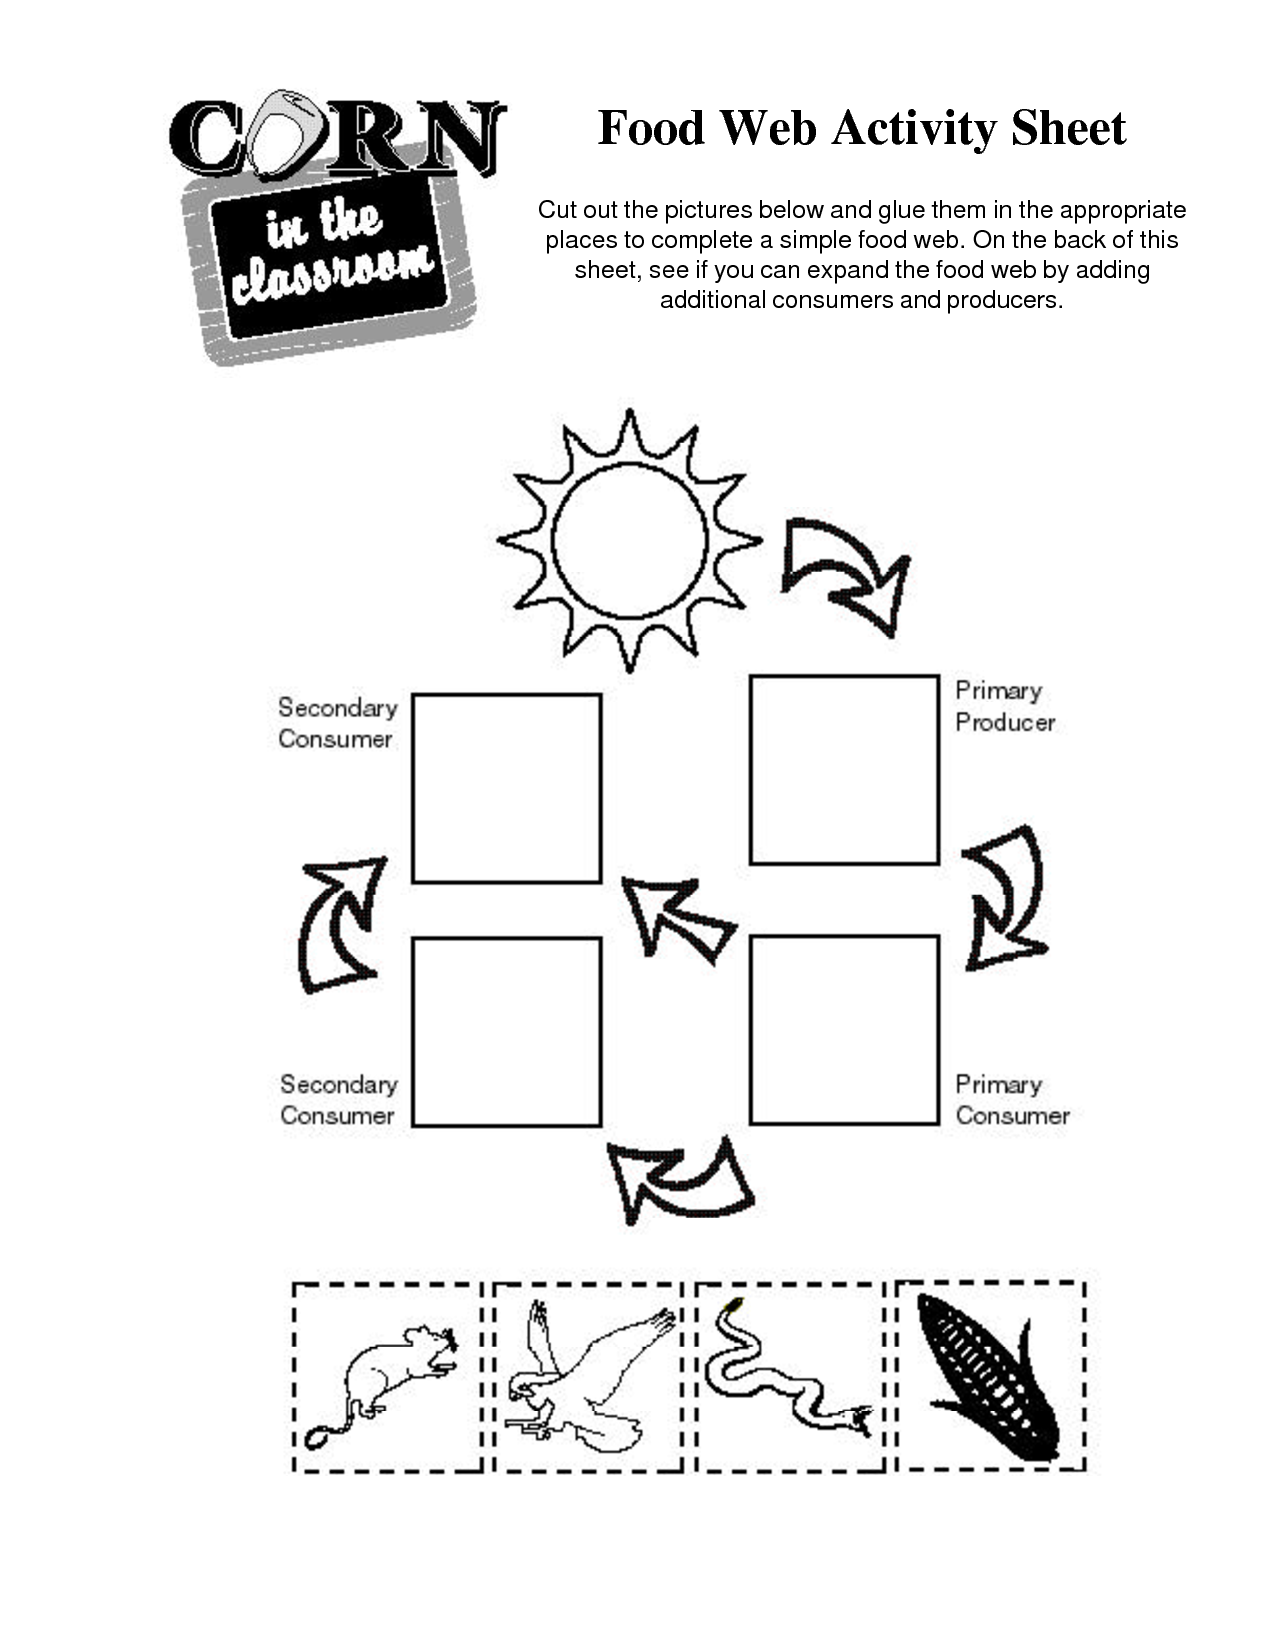 Worksheets Food Chain And Food Web Worksheet food web activity sheet chain corn pinterest sheet